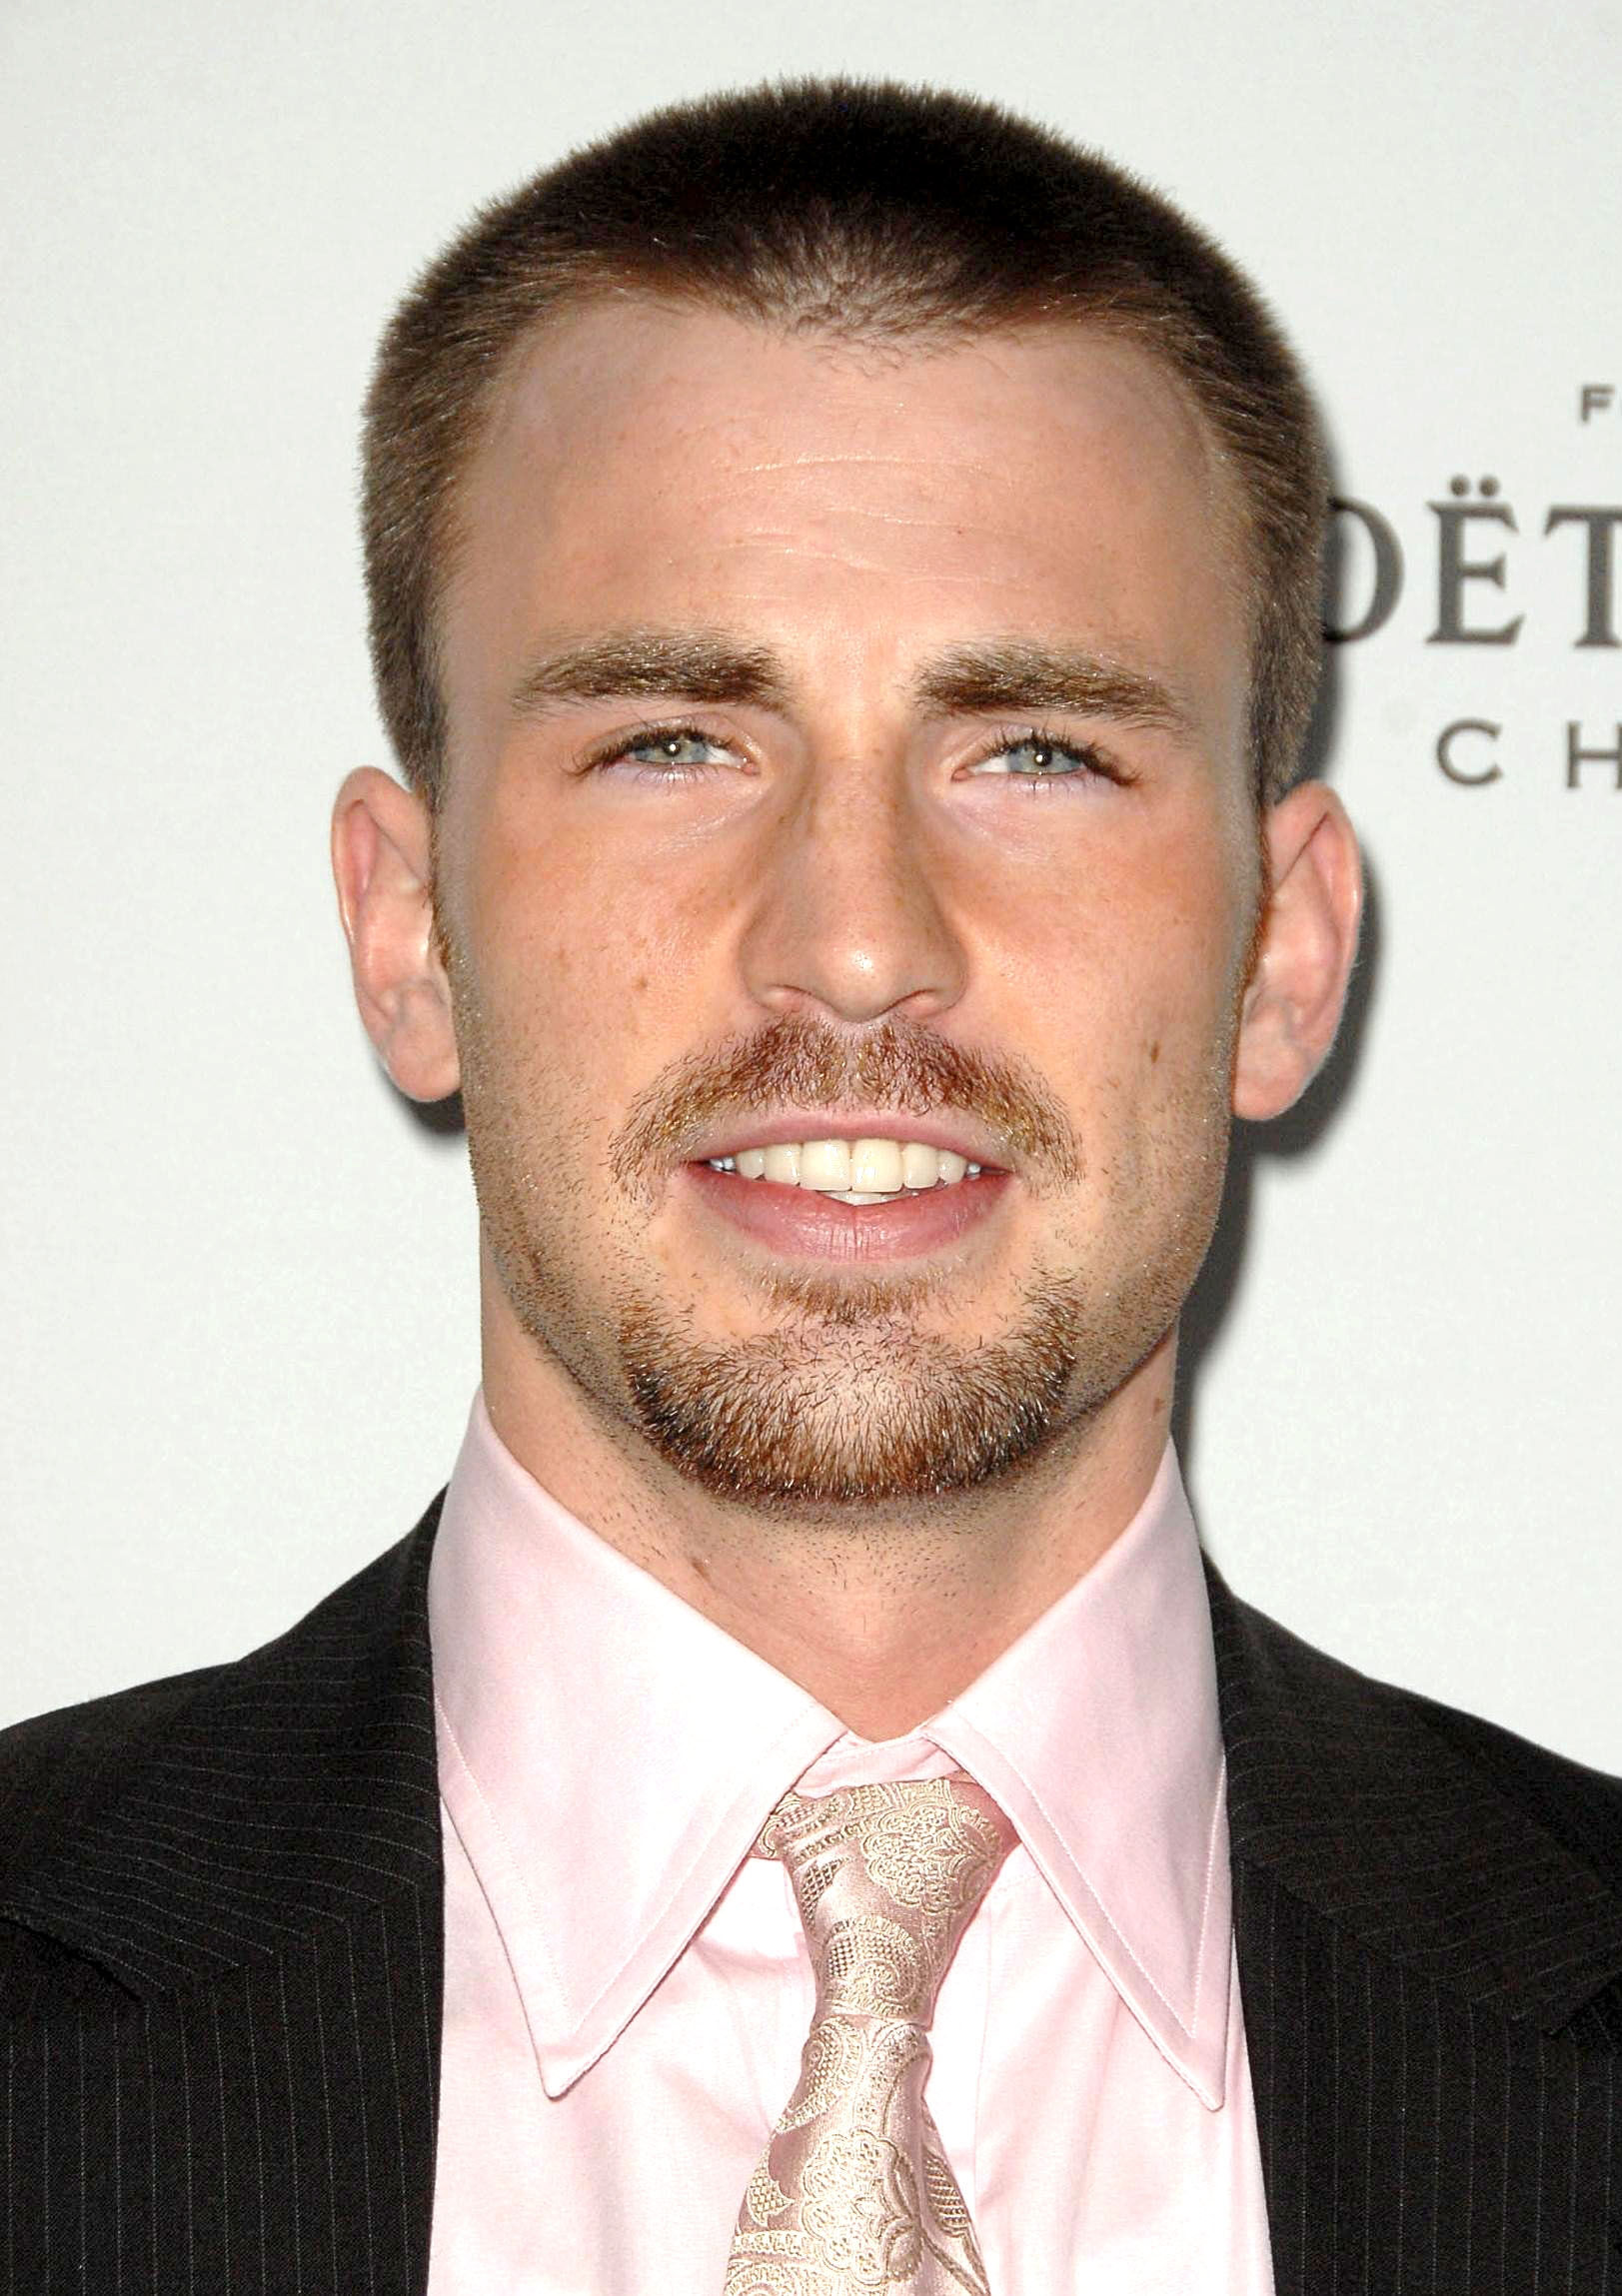 Chris Evans - buzz cut